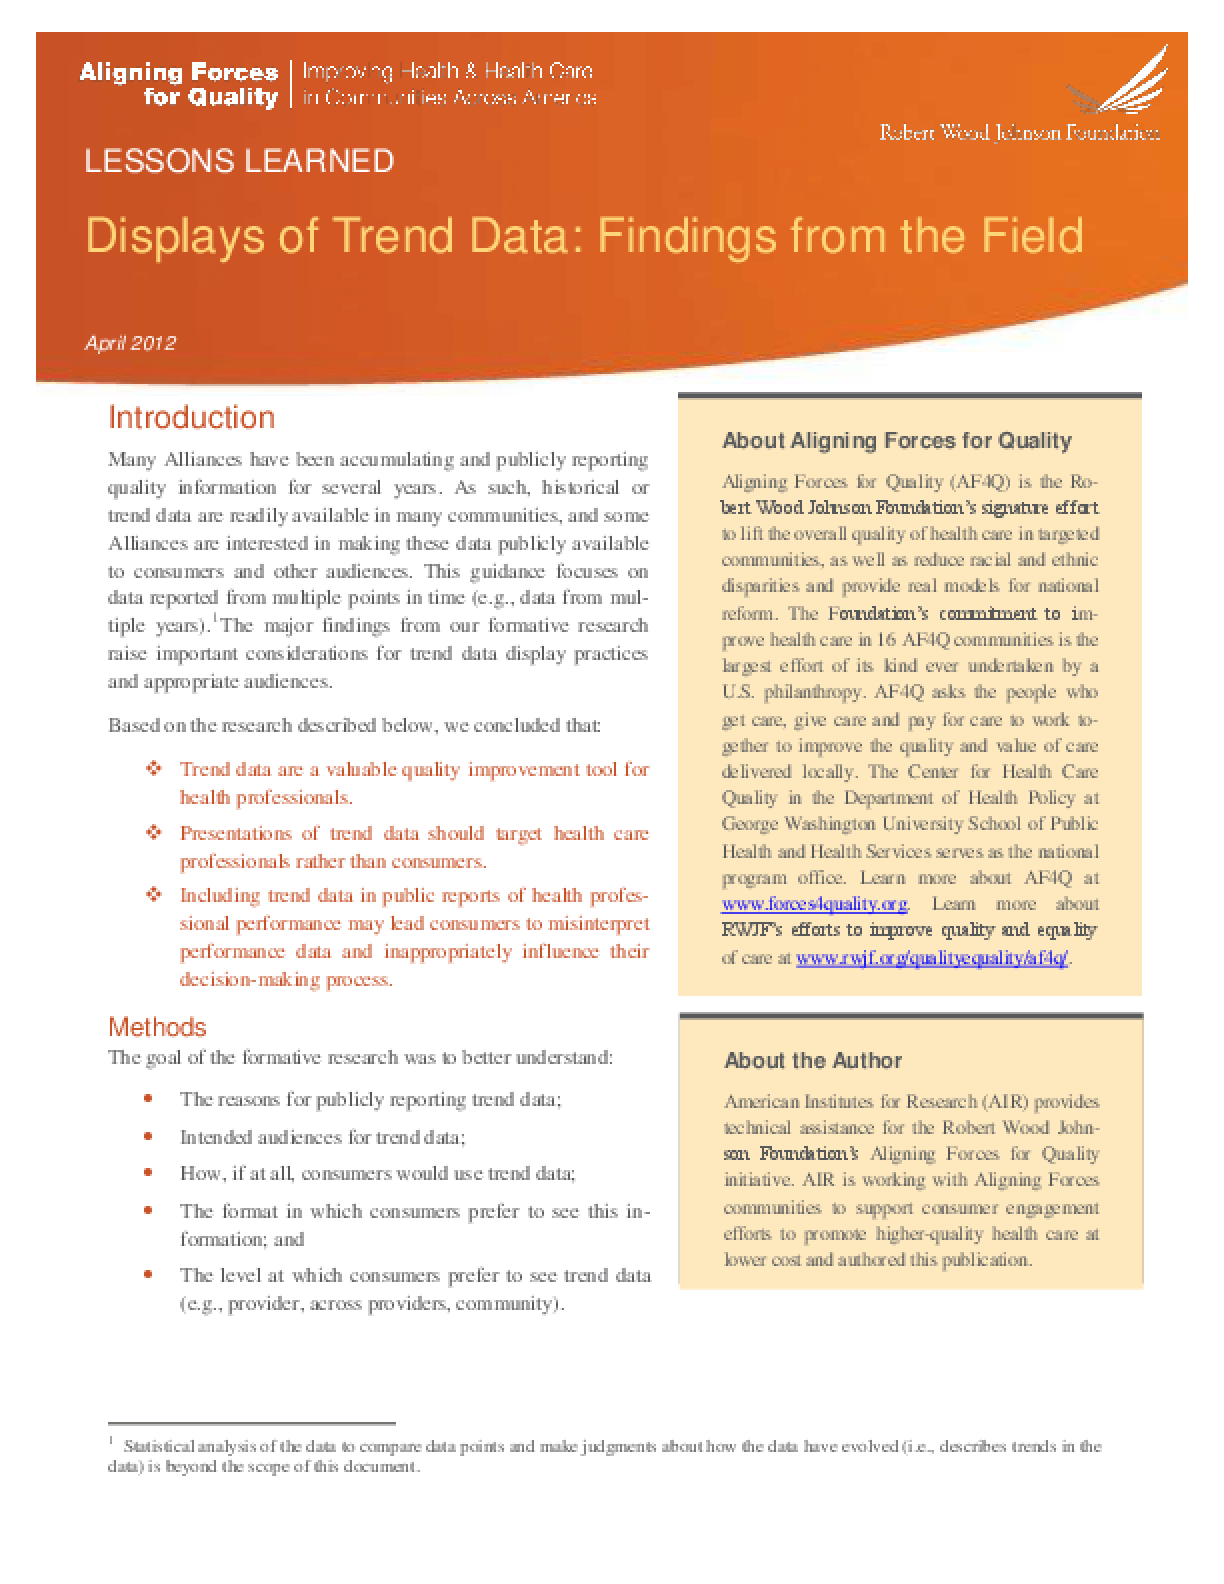 Displays of Trend Data: Findings From the Field